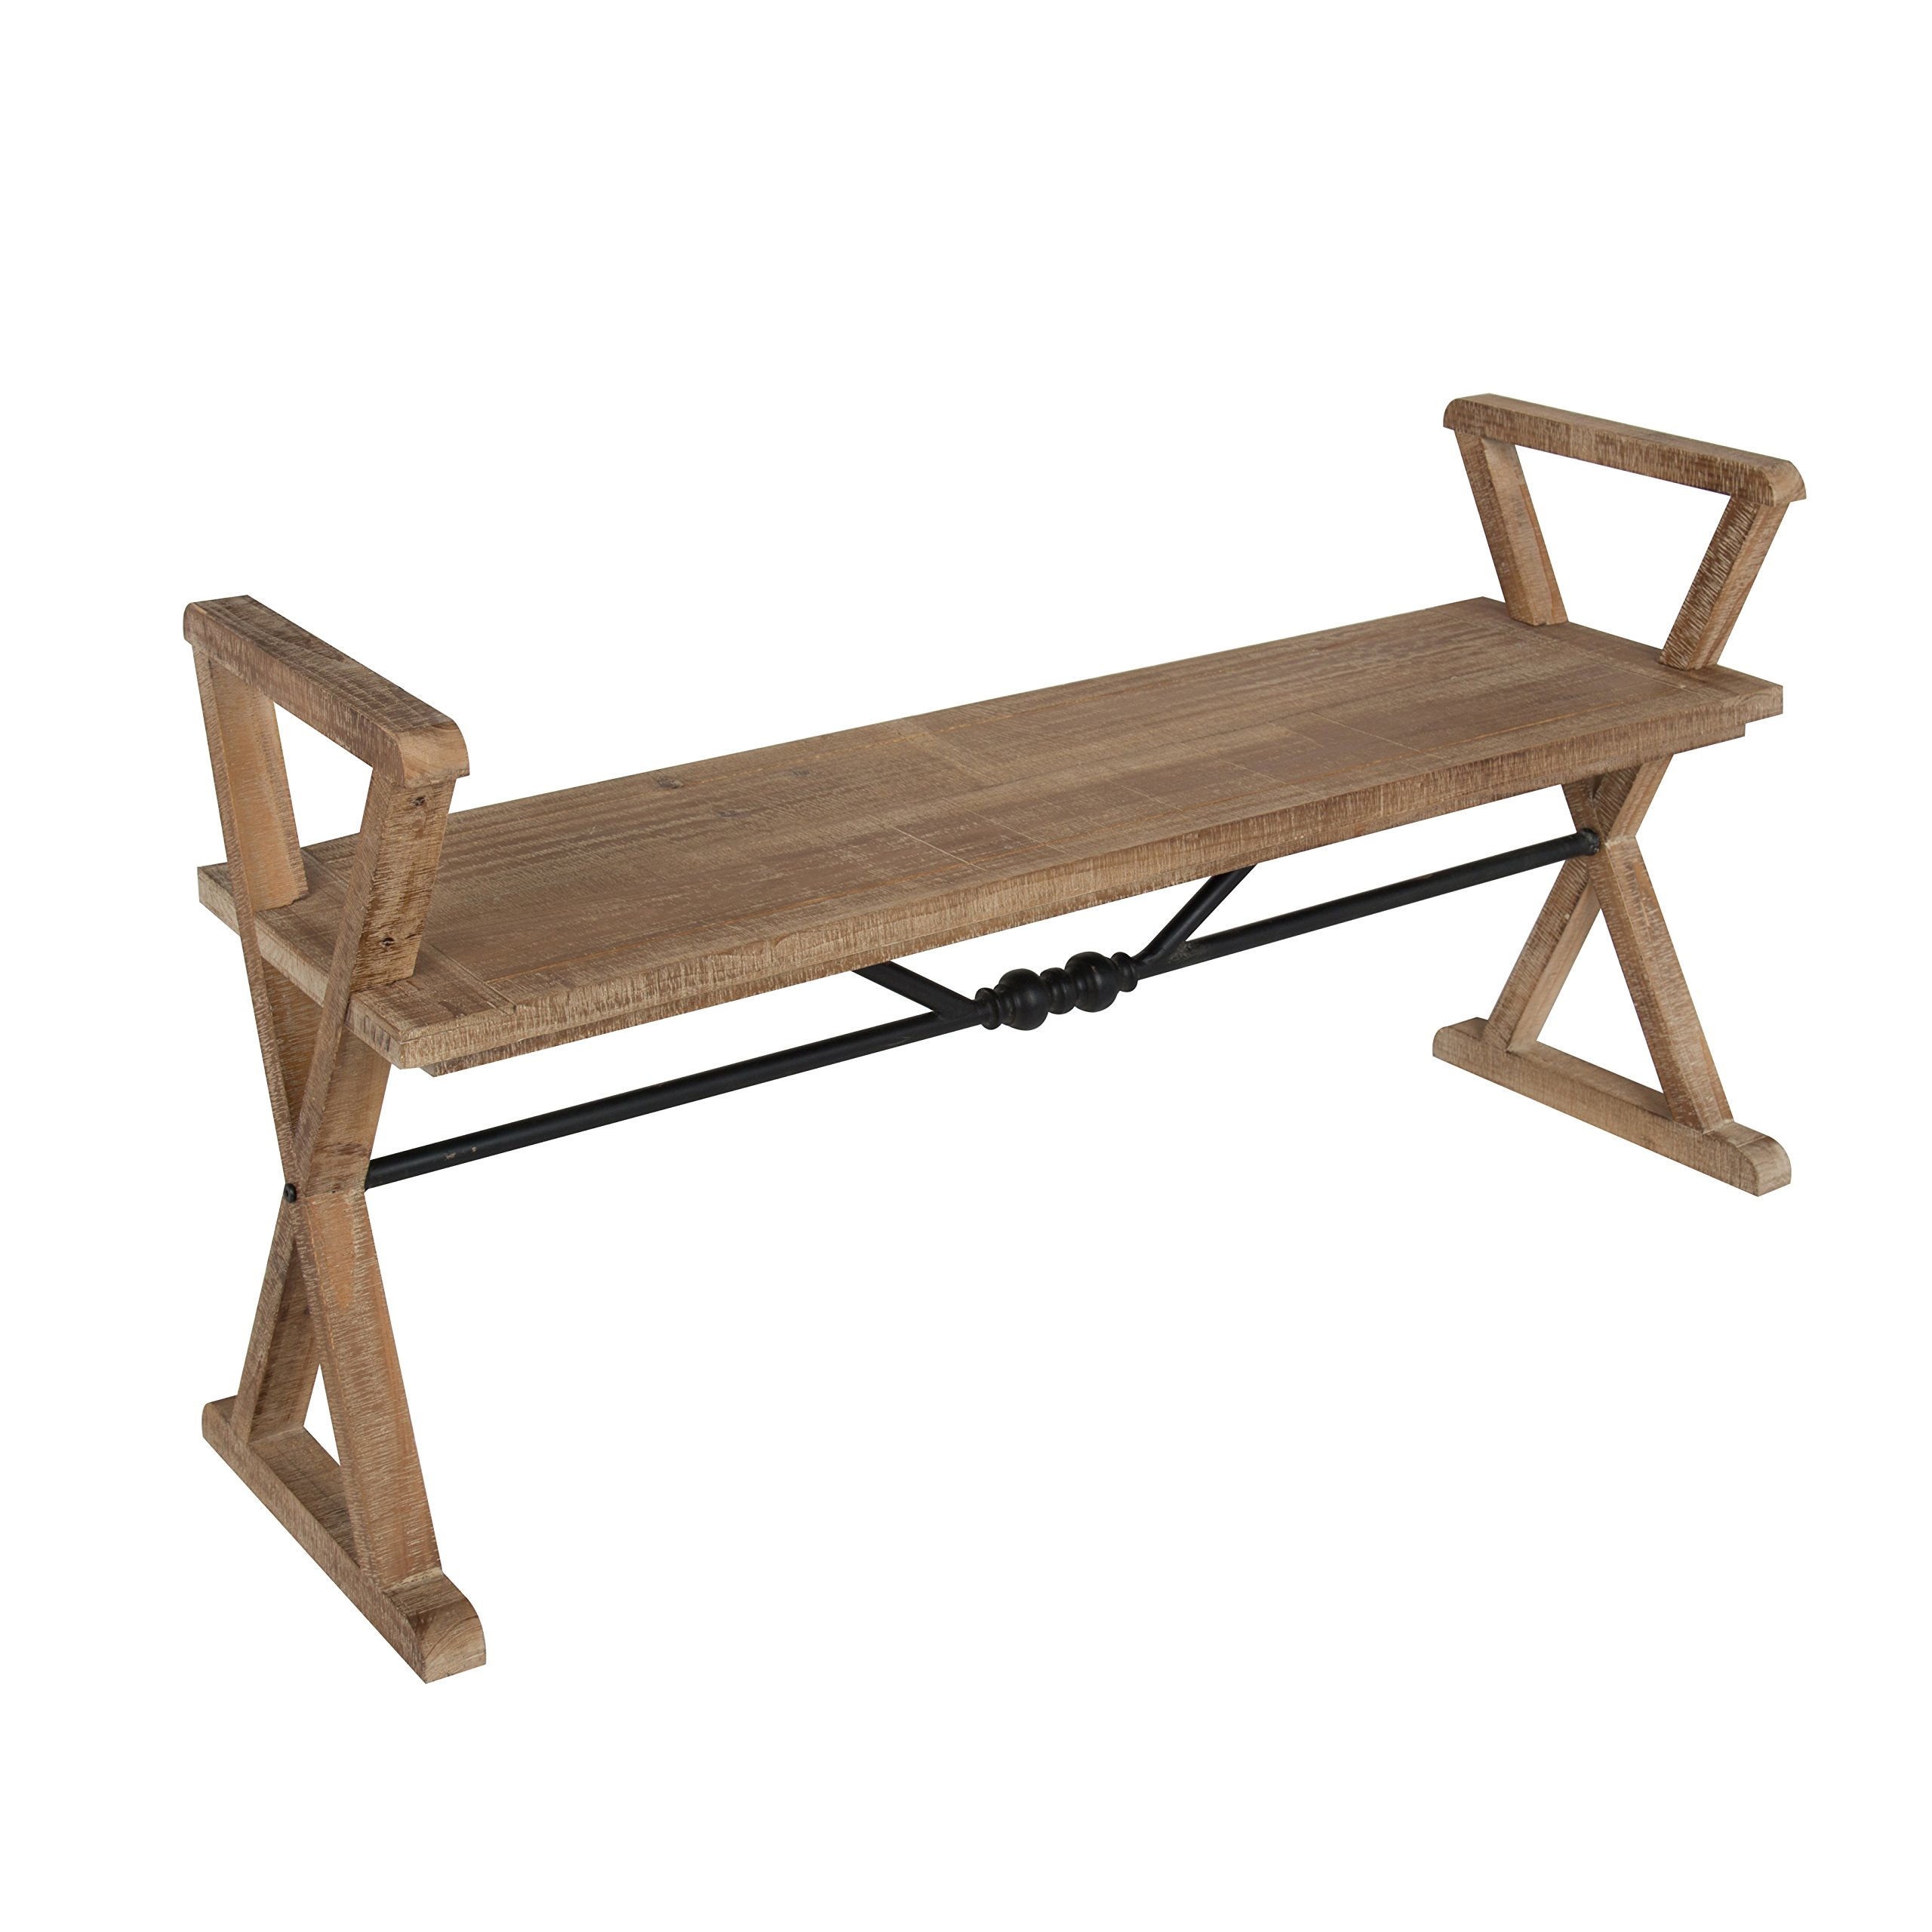 Kate and Laurel Travere Wood Bench, Rustic Finish with Ornate Black Painted Metal Support Bar